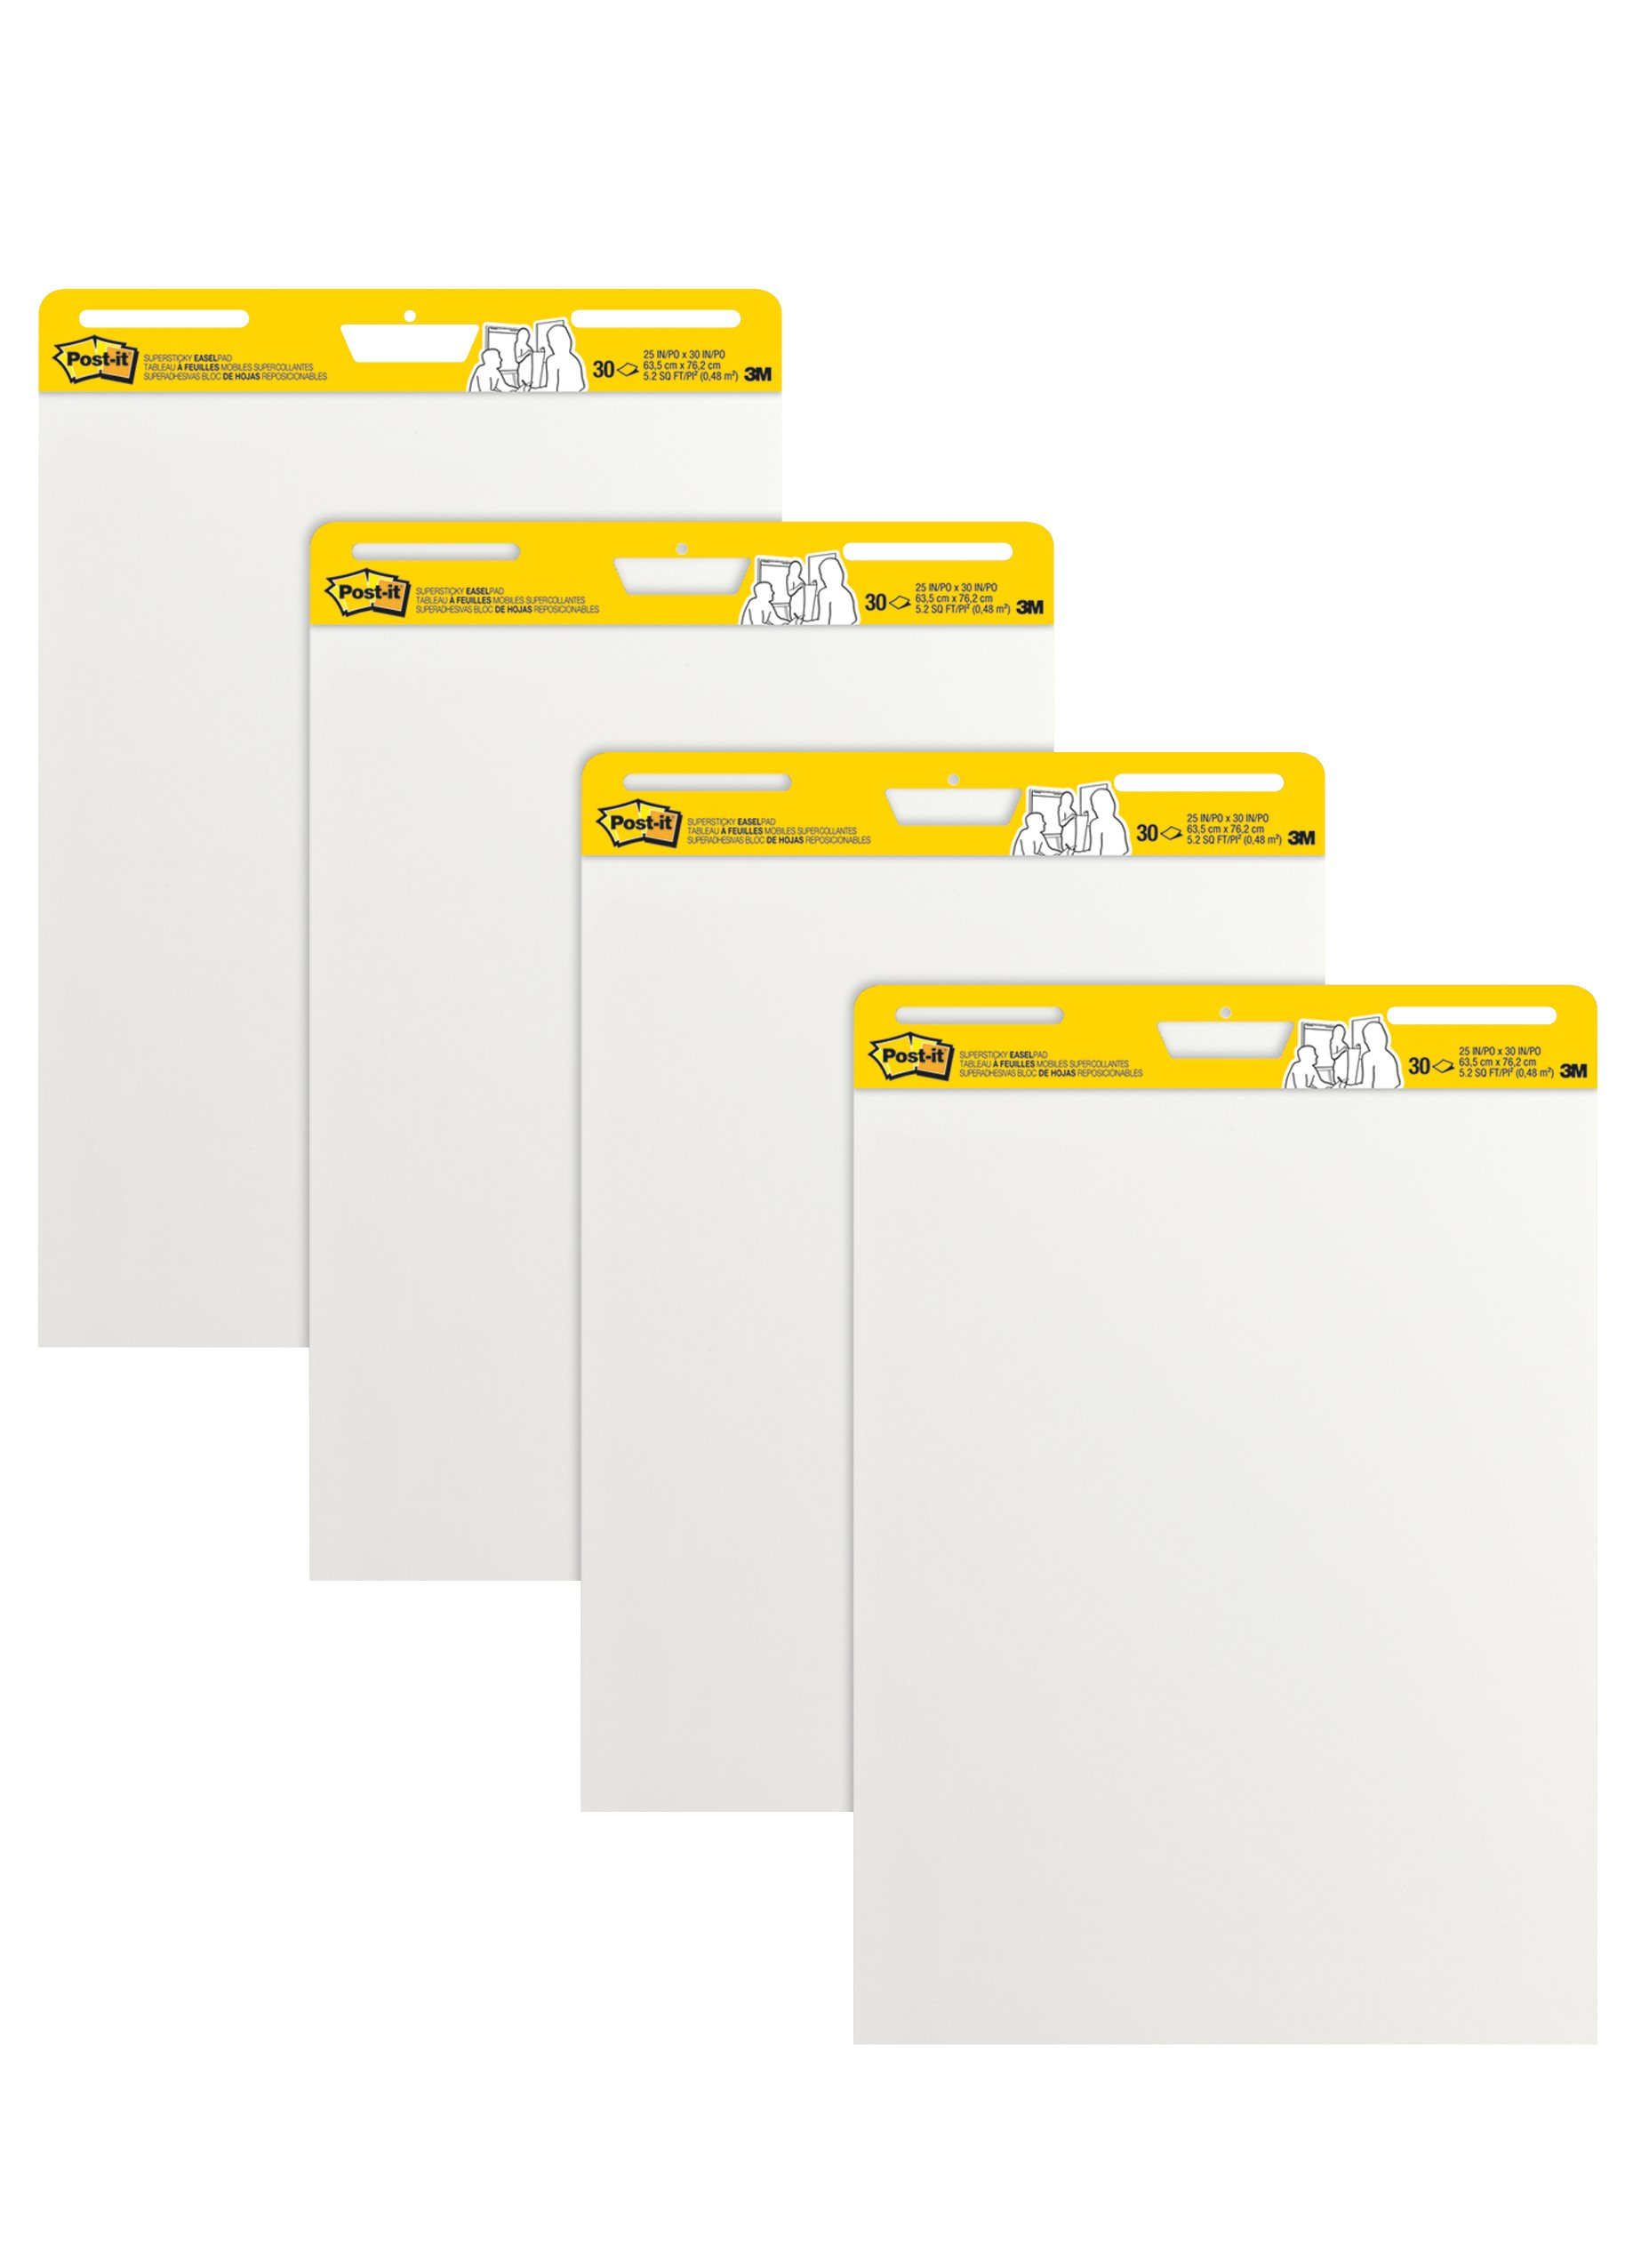 Post-it Easel Pad, 25 x 30-Inches, White, 30-Sheets/Pad, 4-Pads/Pack and Sharpie Flip Chart Markers, Bullet Tip, Assorted Colors, 8-Count Bundle by Post-it